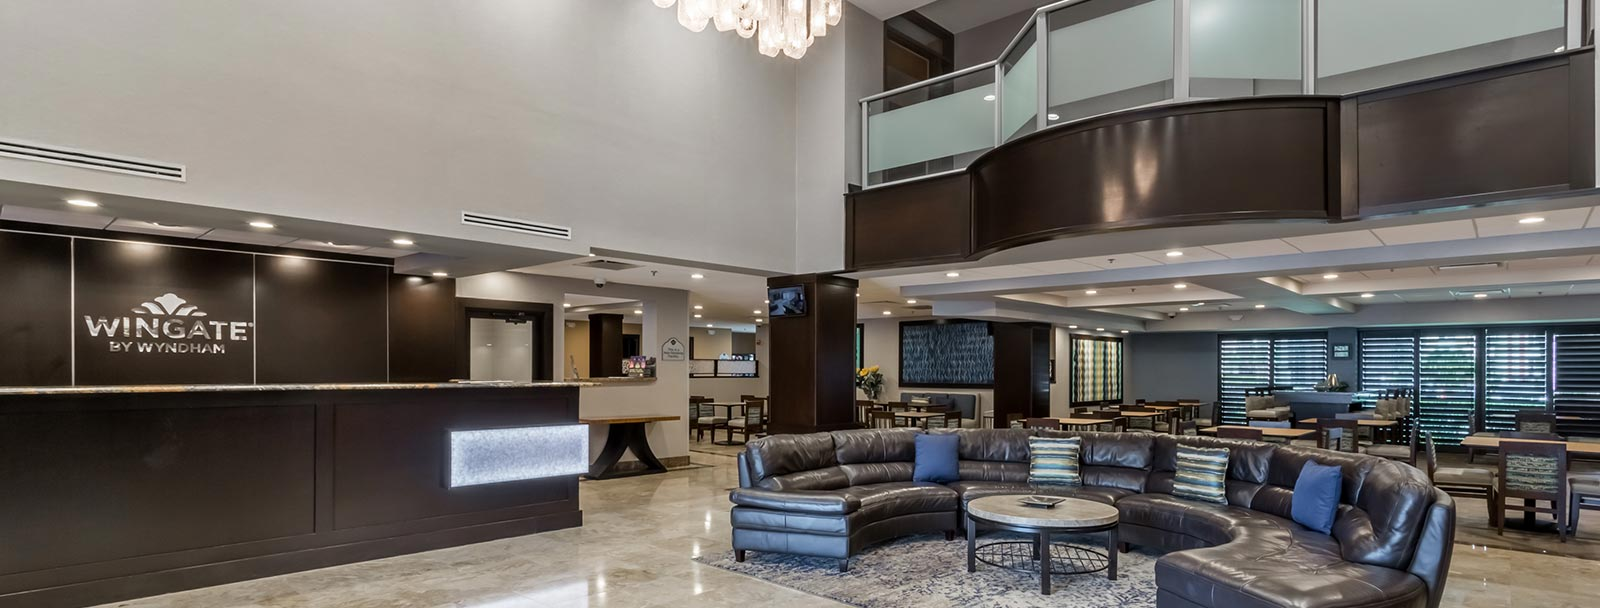 Wingate by Wyndham Universal Studios & Convention Center, Orlando